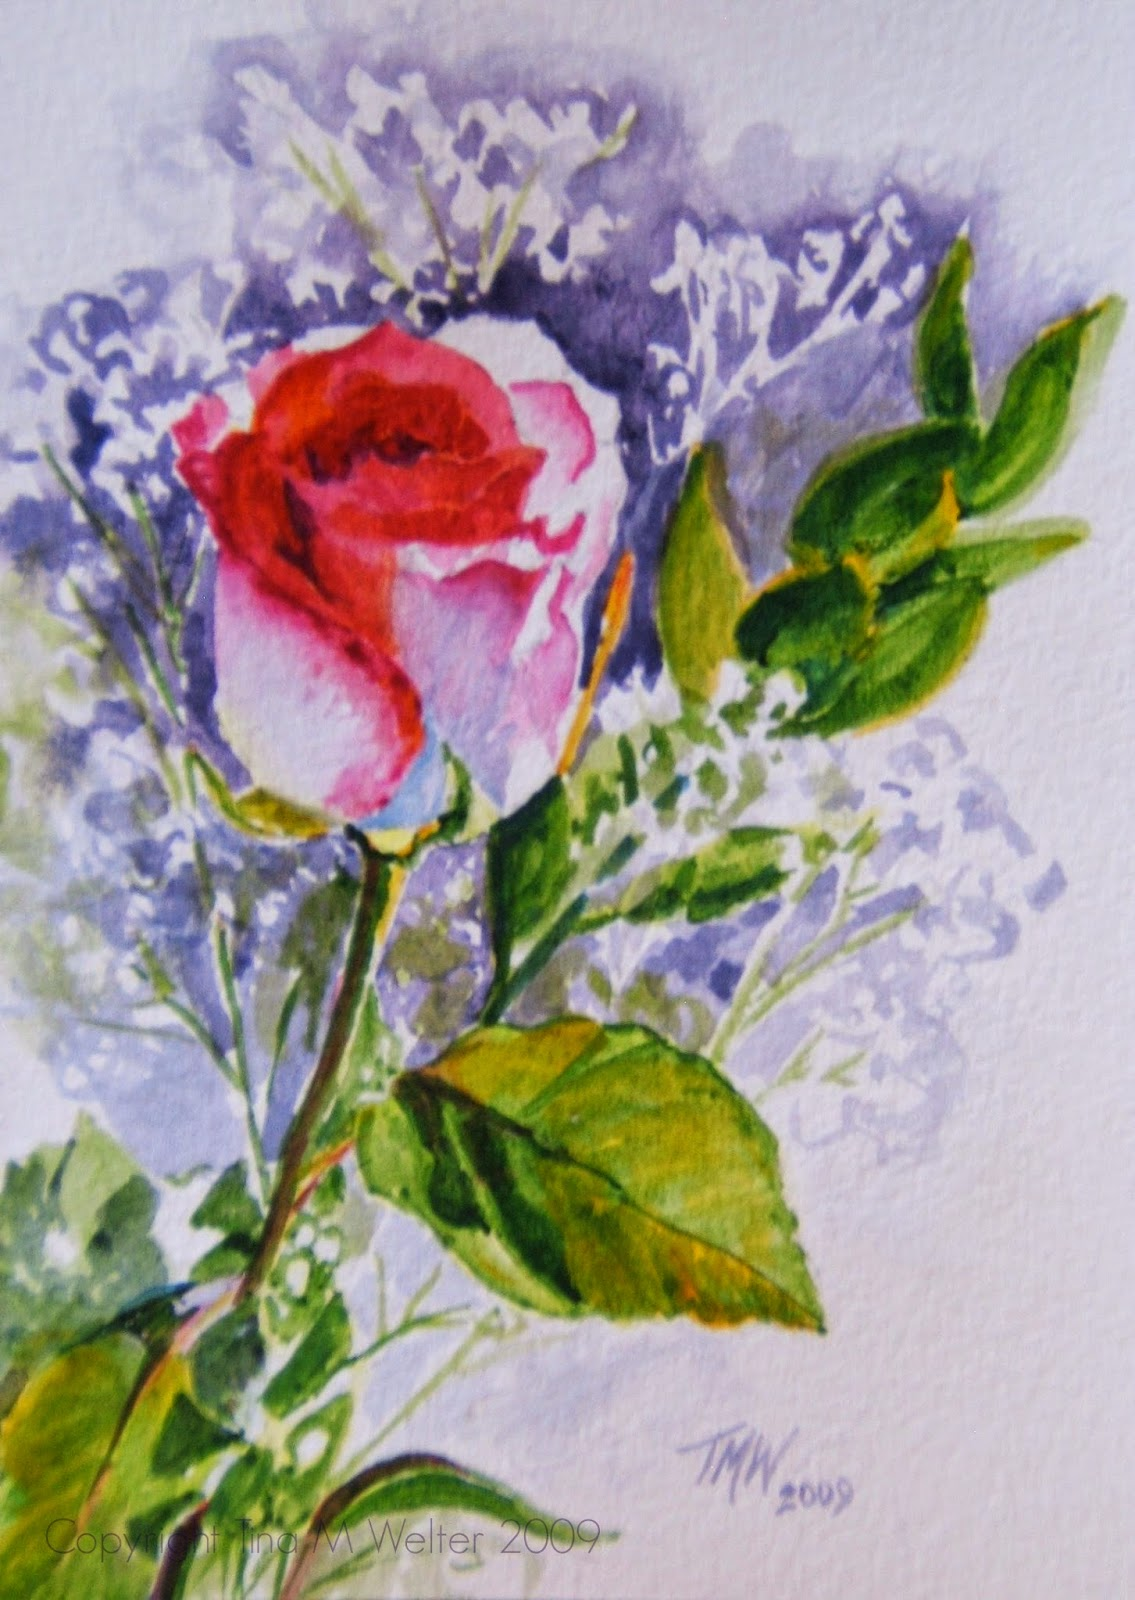 """Rose for Carol"" 7""x 5"" watercolor on paper, copyright Tina M Welter 2009"